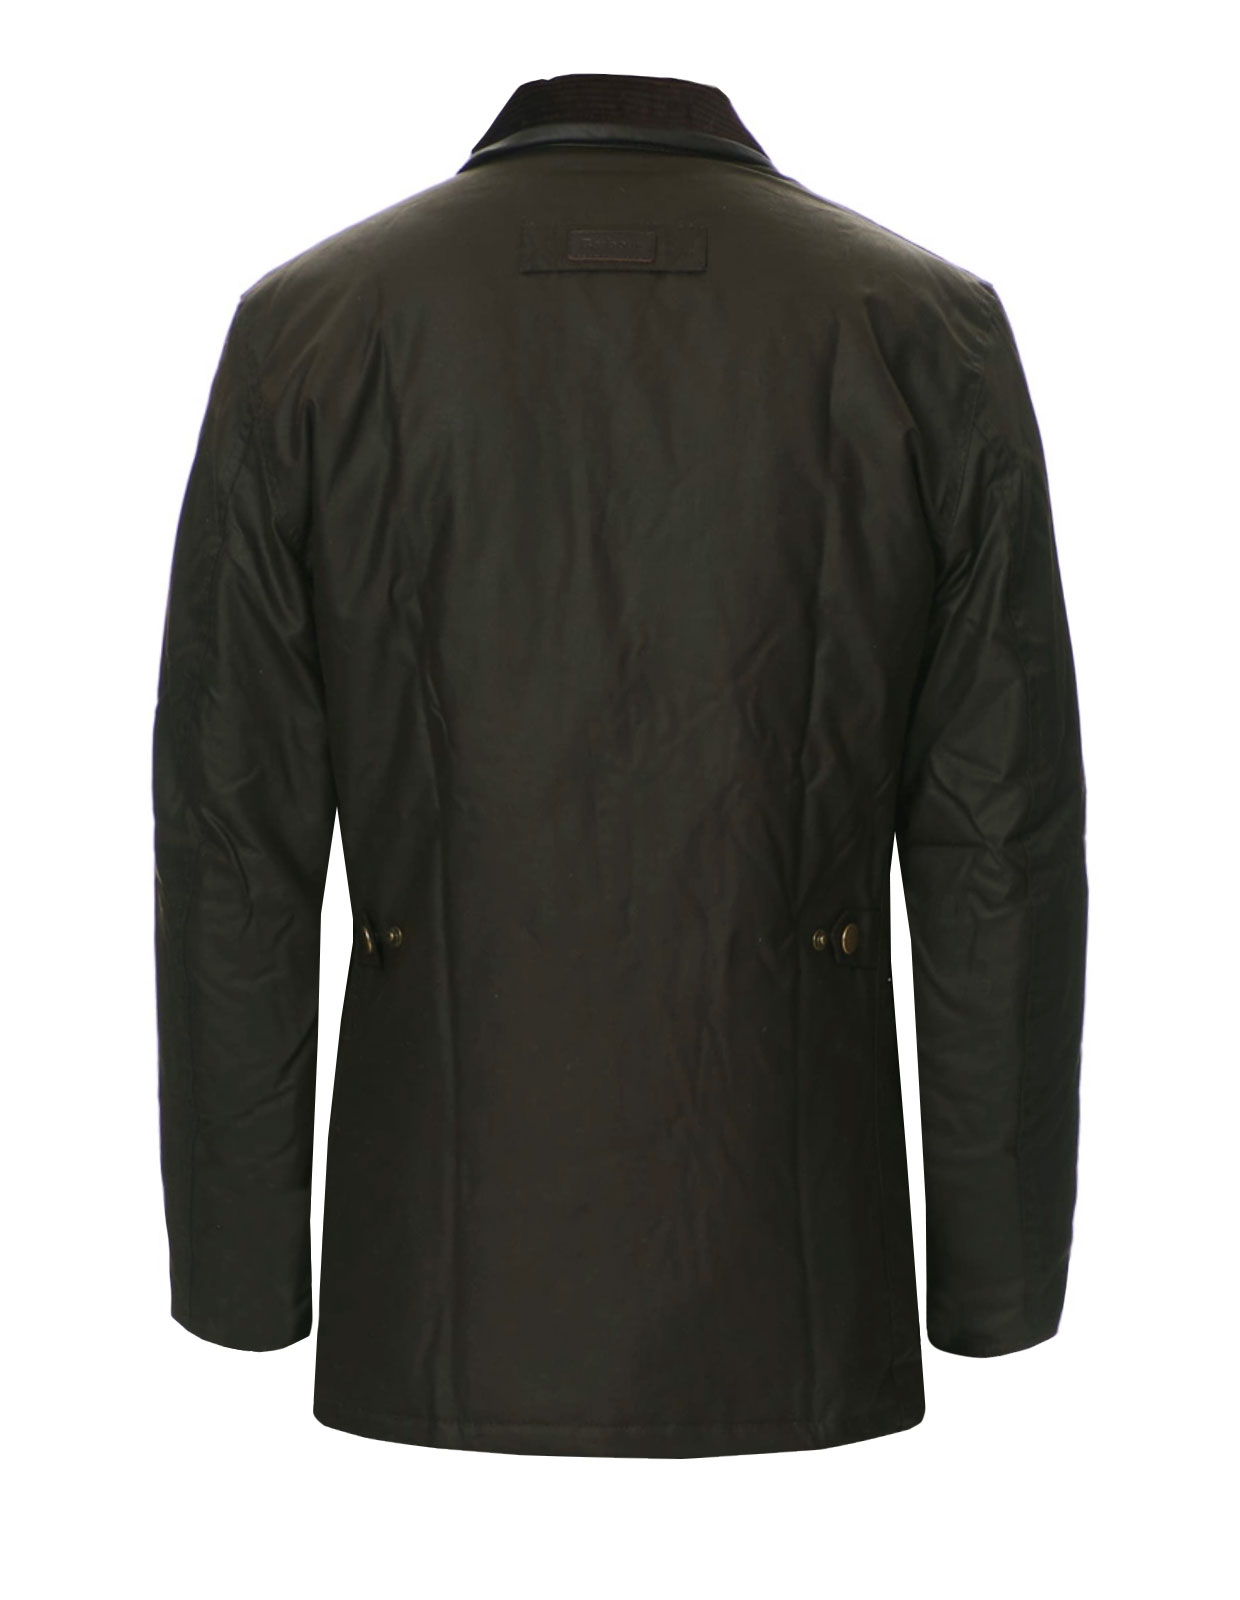 Hereford Jacket Olive